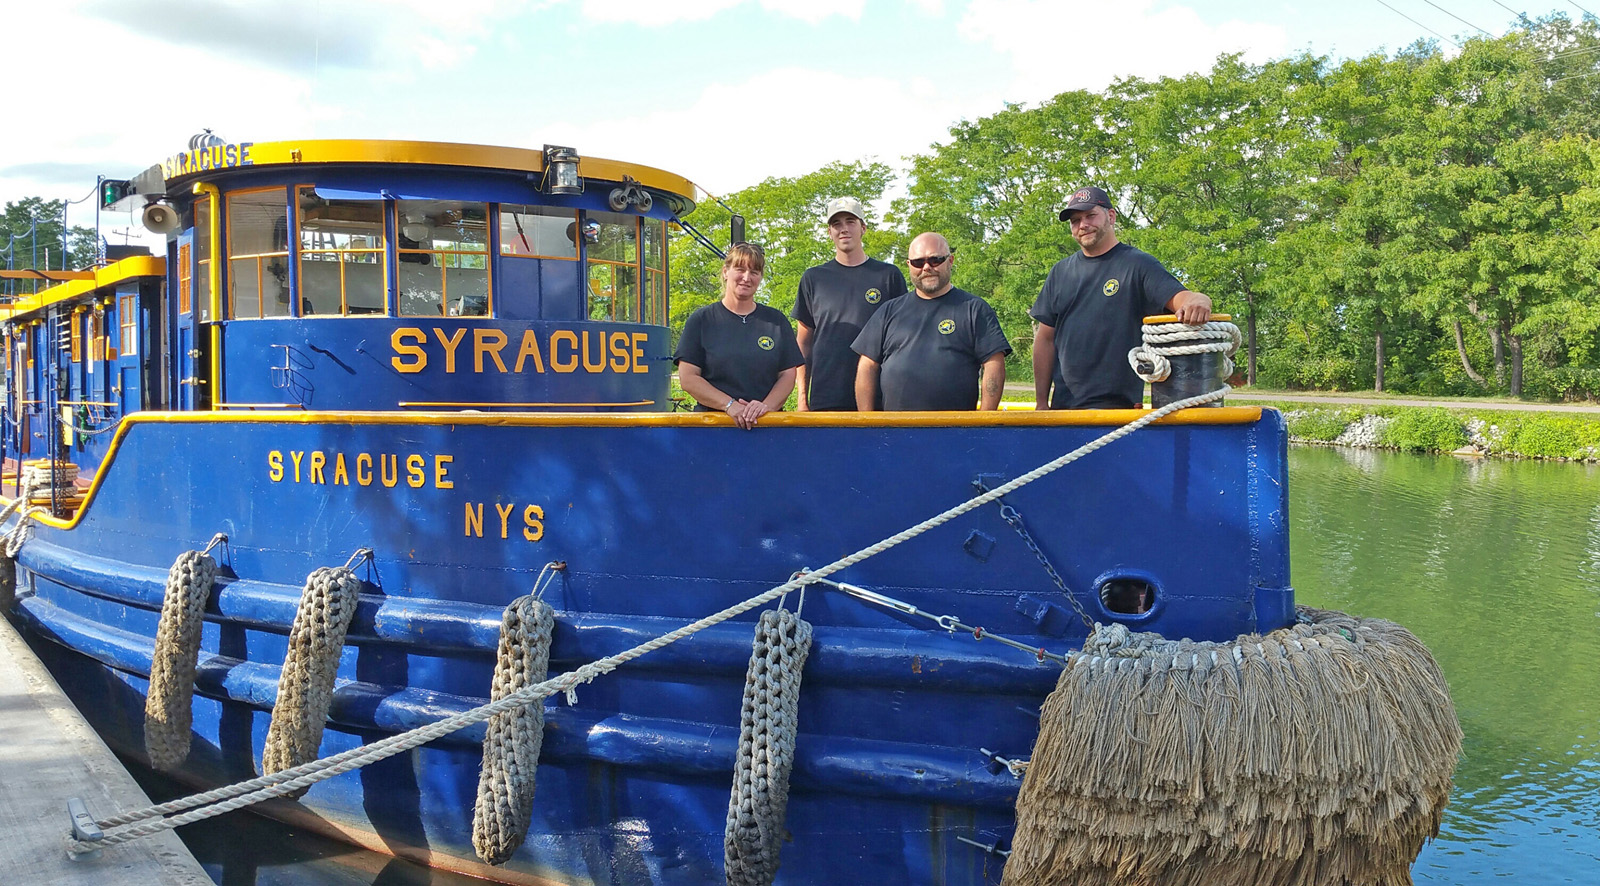 The crew of Tug Syracuse:  (l to r) Captain Wendy Marble, deck hand Seth Brant, marine engineer Jim O'Connor, and deck hand Jerry Spicer. They stay on the tugboat overnight. Photo by Dianne Hickerson